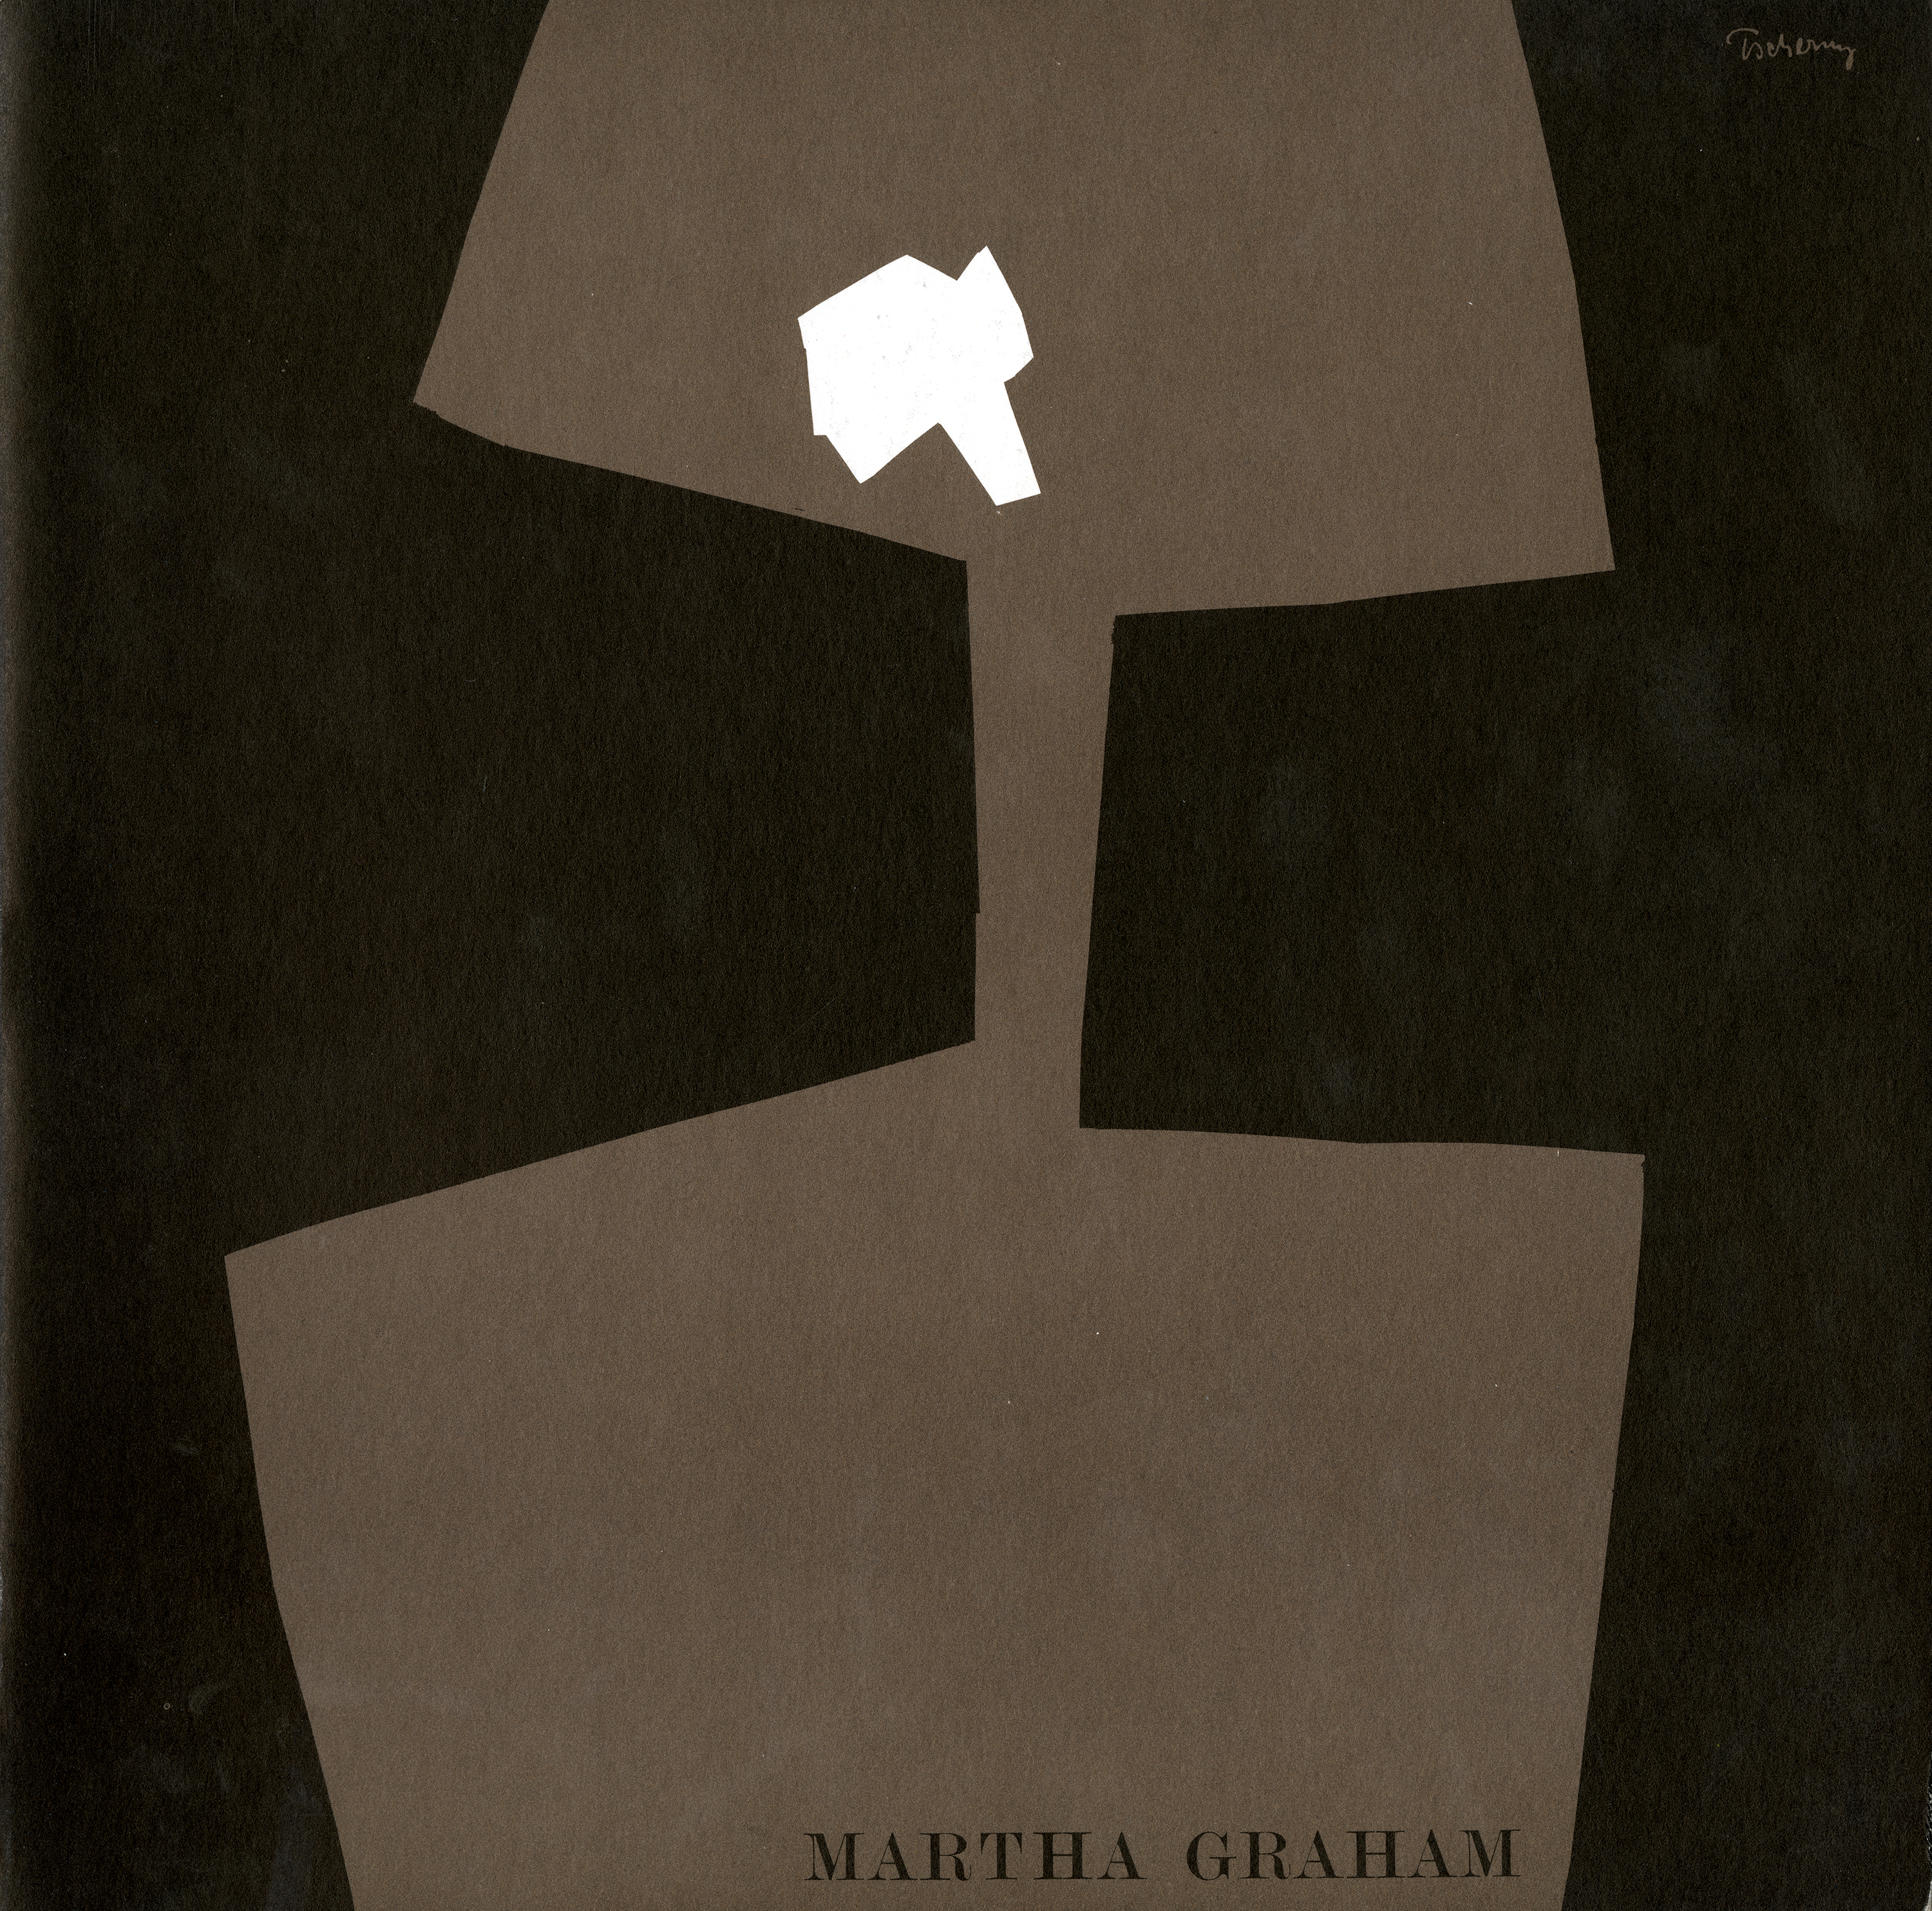 Program cover featuring a simple brown shape on a black background, suggesting the abstract figure of a dancer with a white shape for ahead.